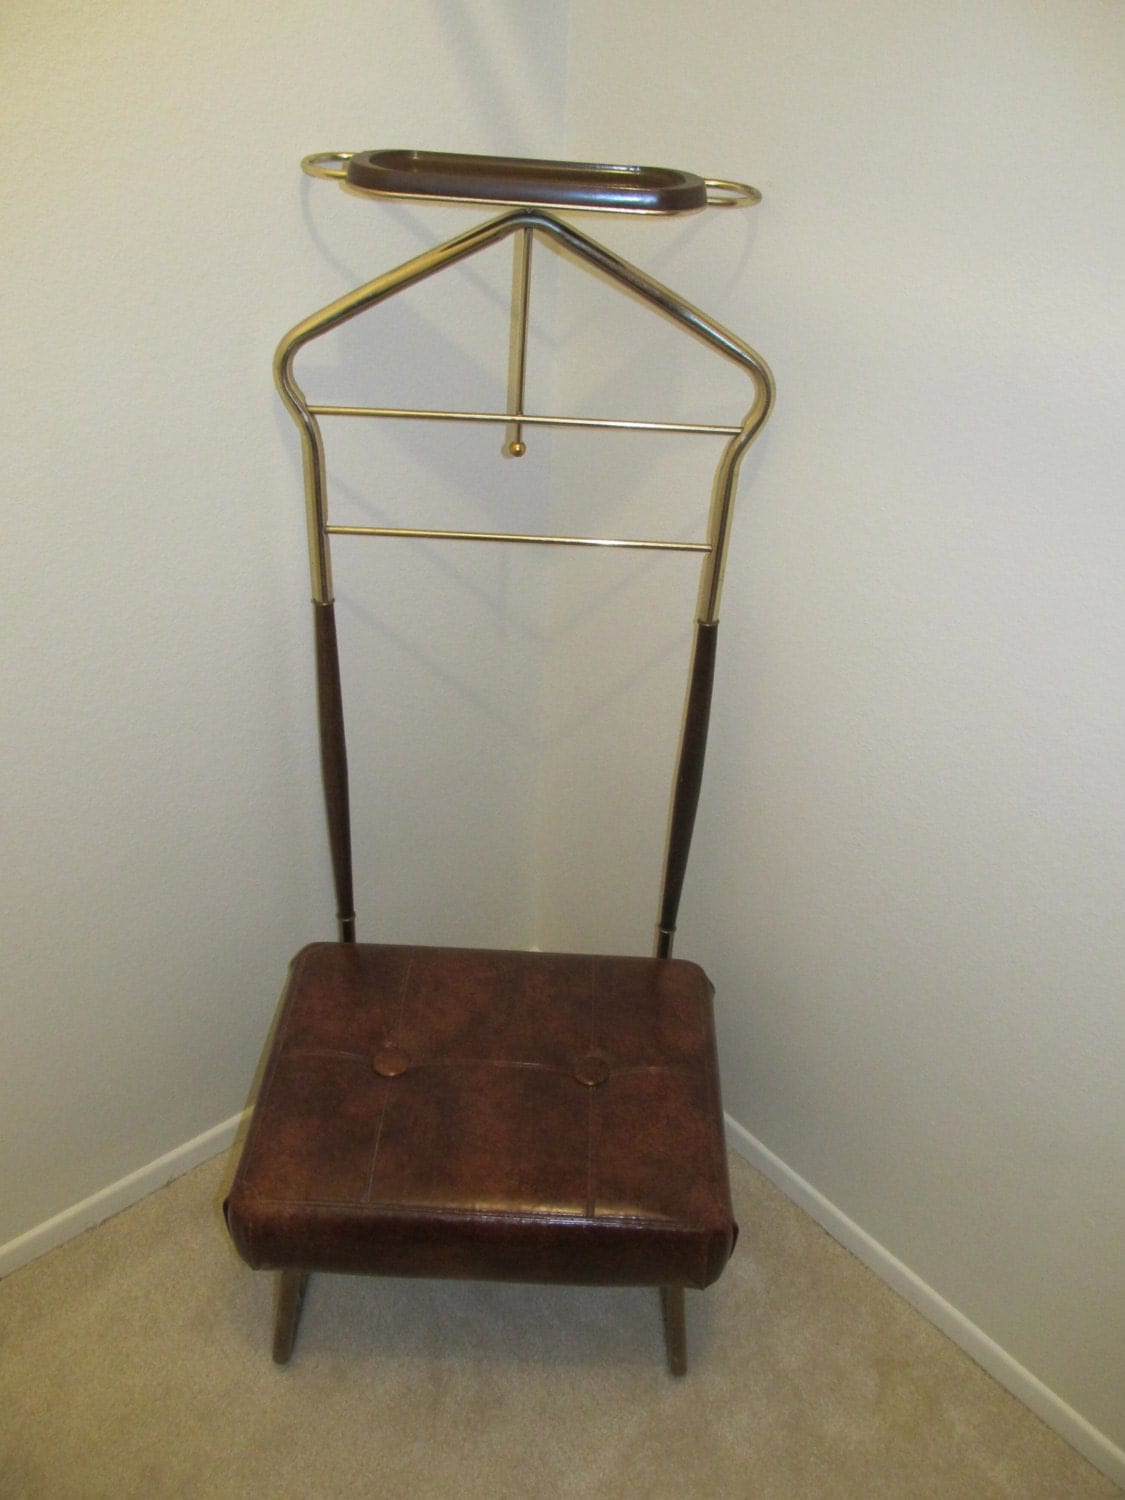 Valet Chair Mid Century Butler Chair Valet Chair Mid Century Furniture